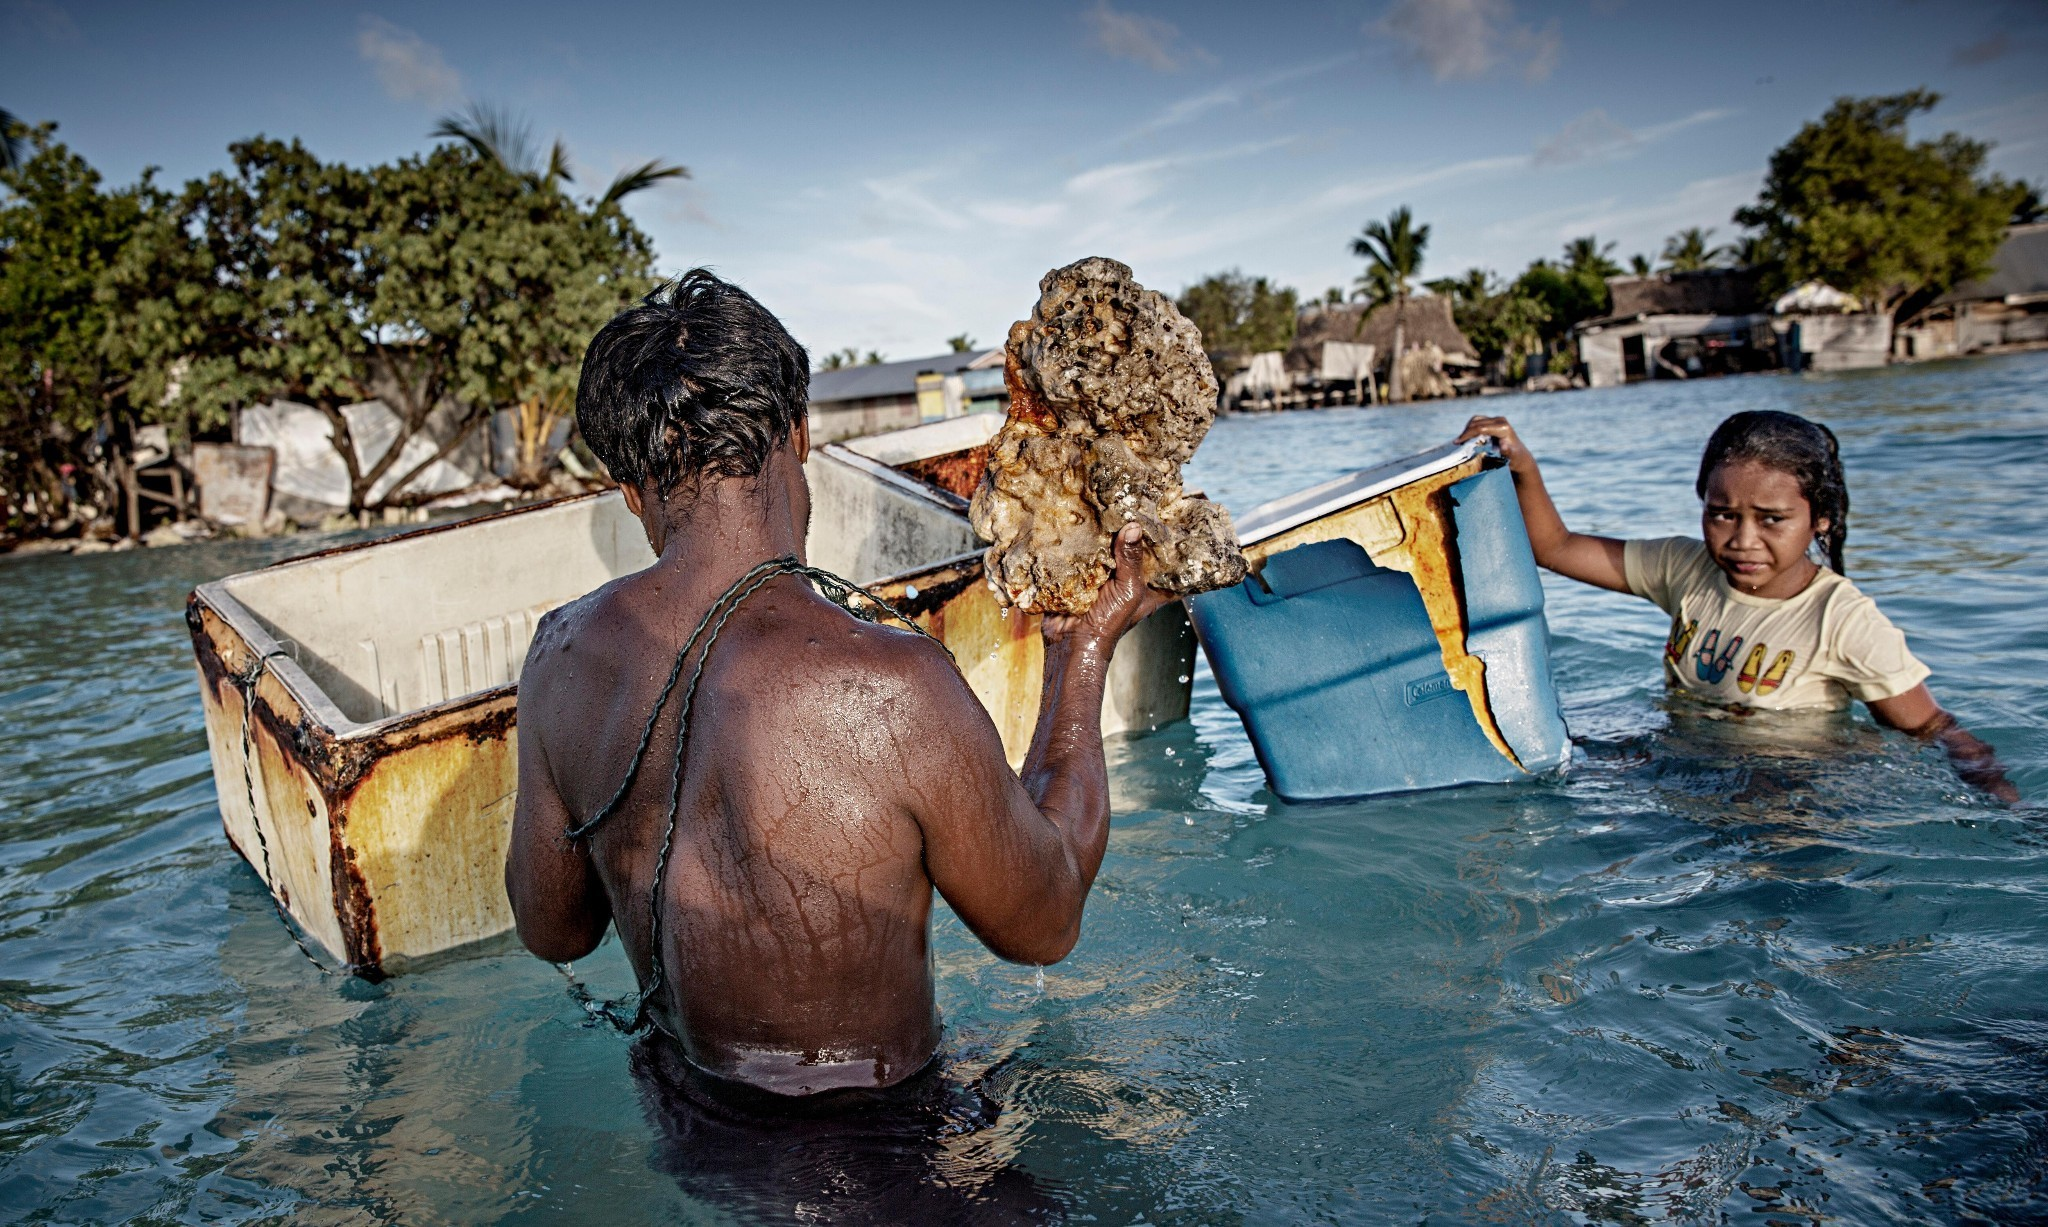 World Bank: let climate-threatened Pacific islanders migrate to Australia or NZ